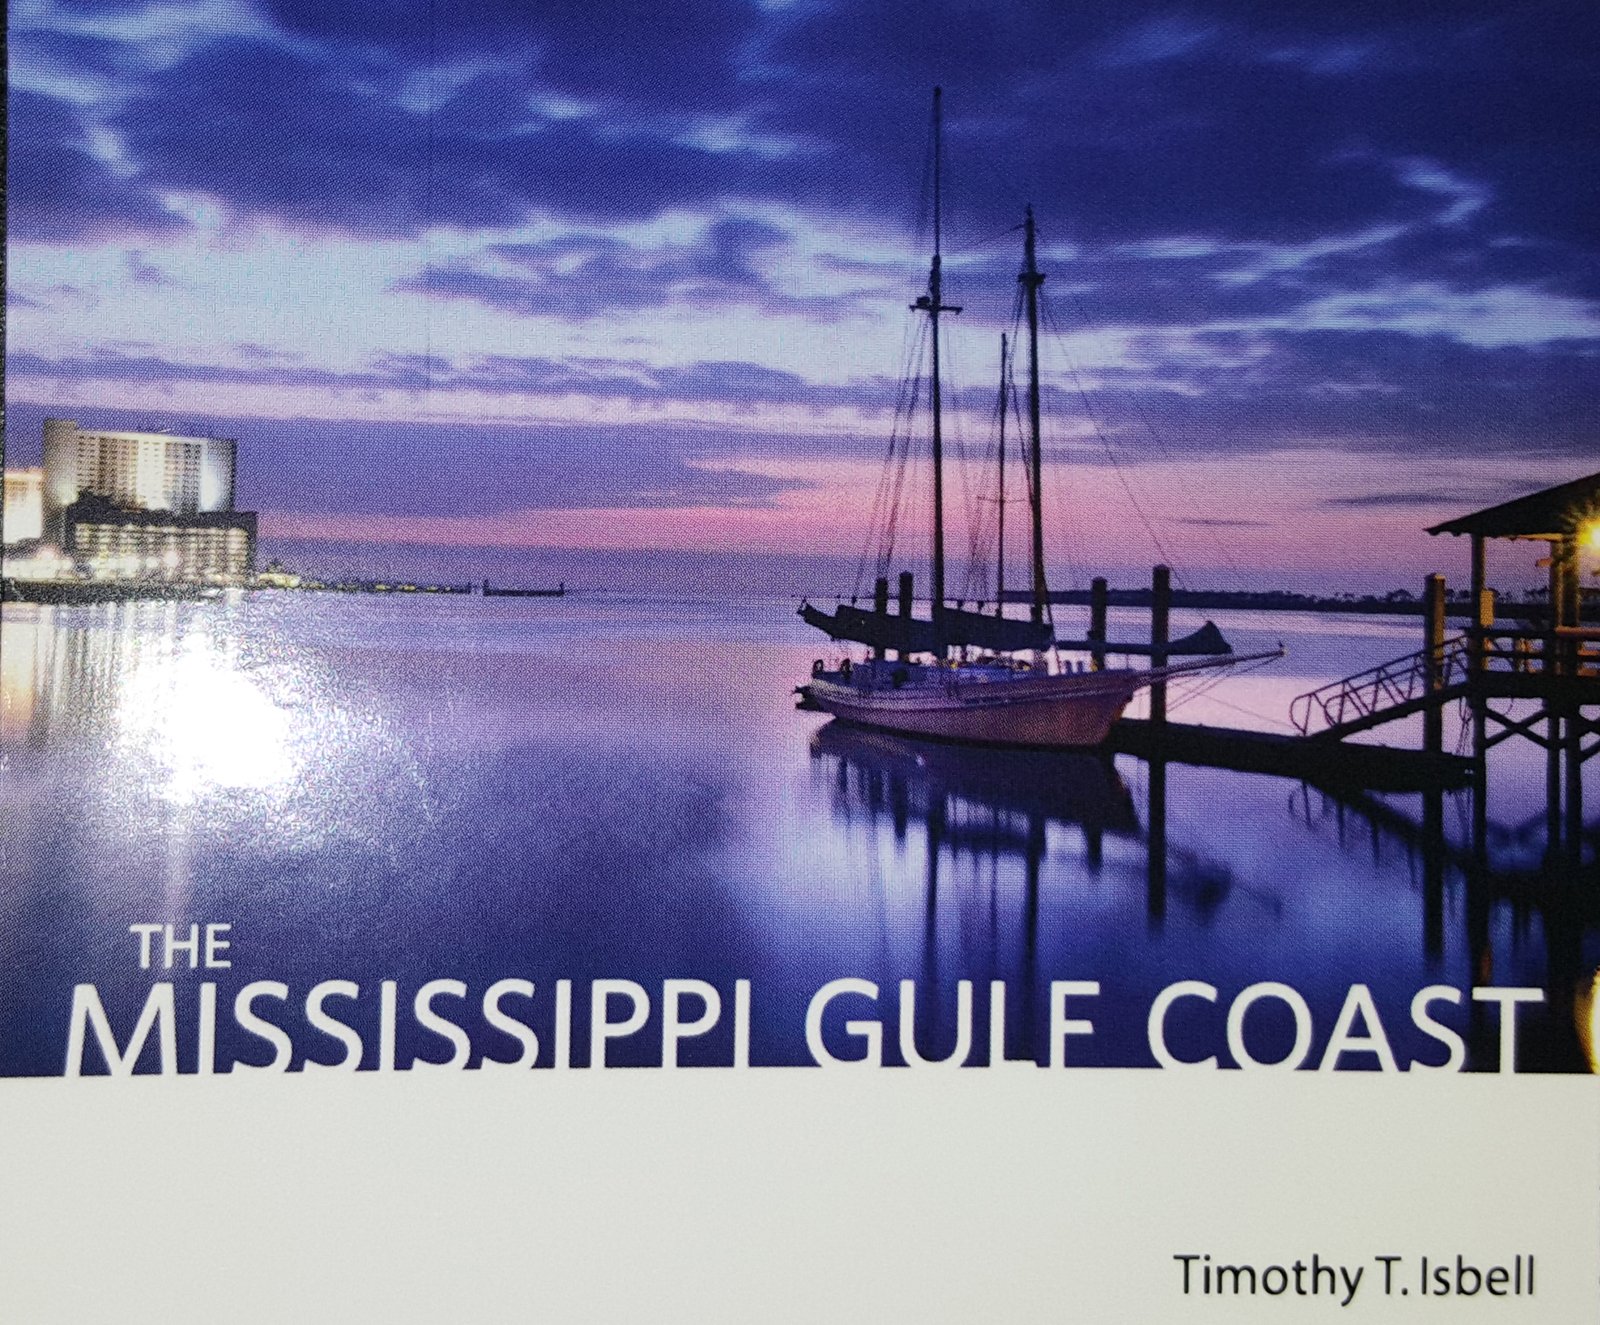 Mississippi Gulf Coast book